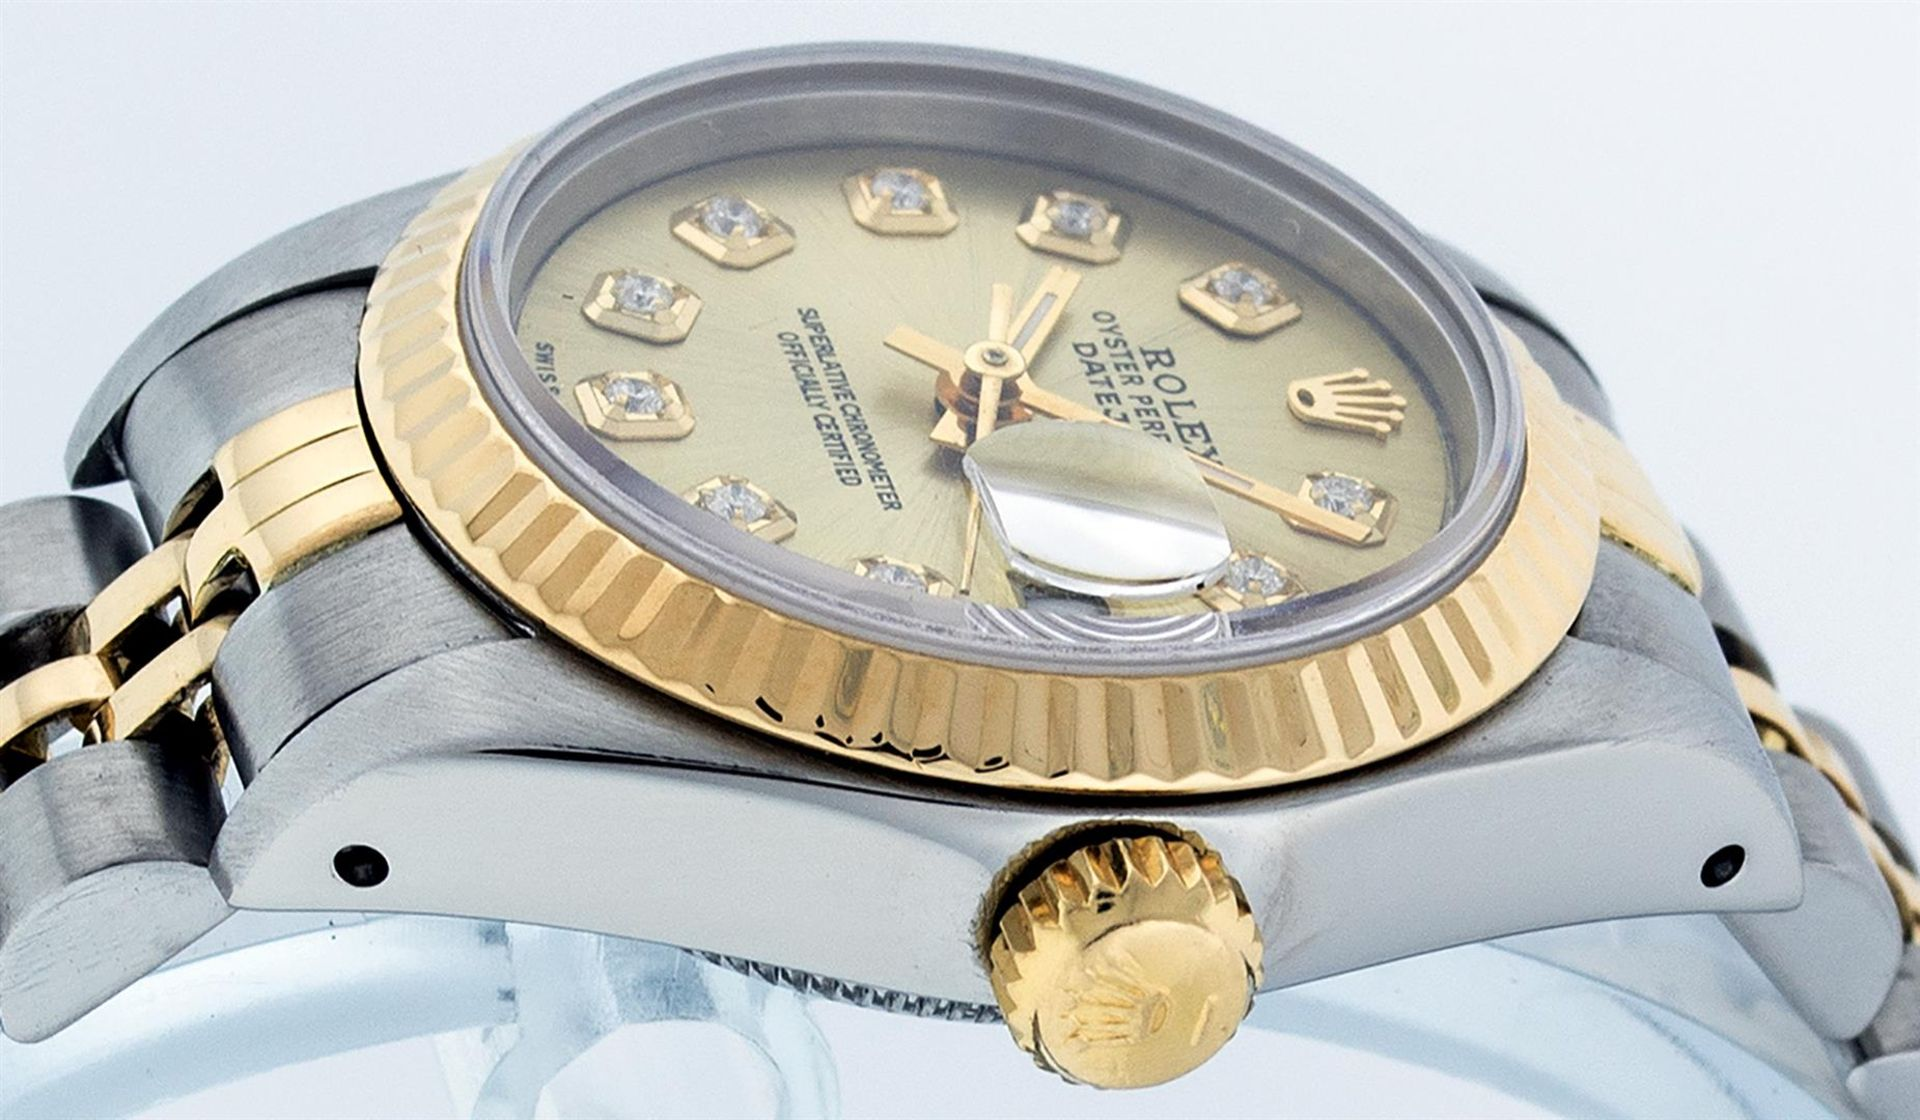 Rolex Ladies 2 Tone Champagne Diamond 26MM Datejust Wristwatch - Image 3 of 9